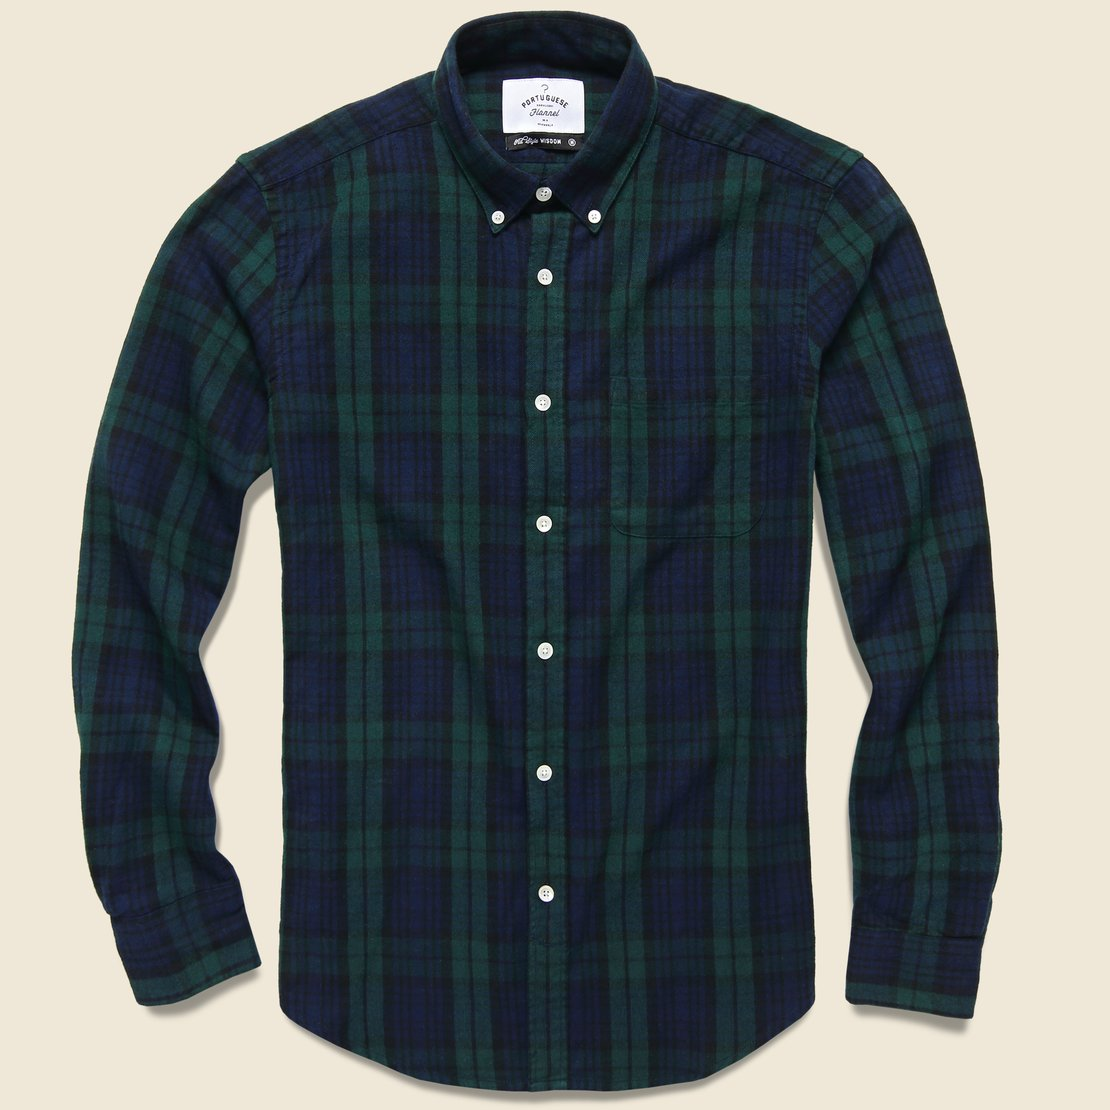 Portuguese Flannel Bonfim Plaid Flannel - Blackwatch